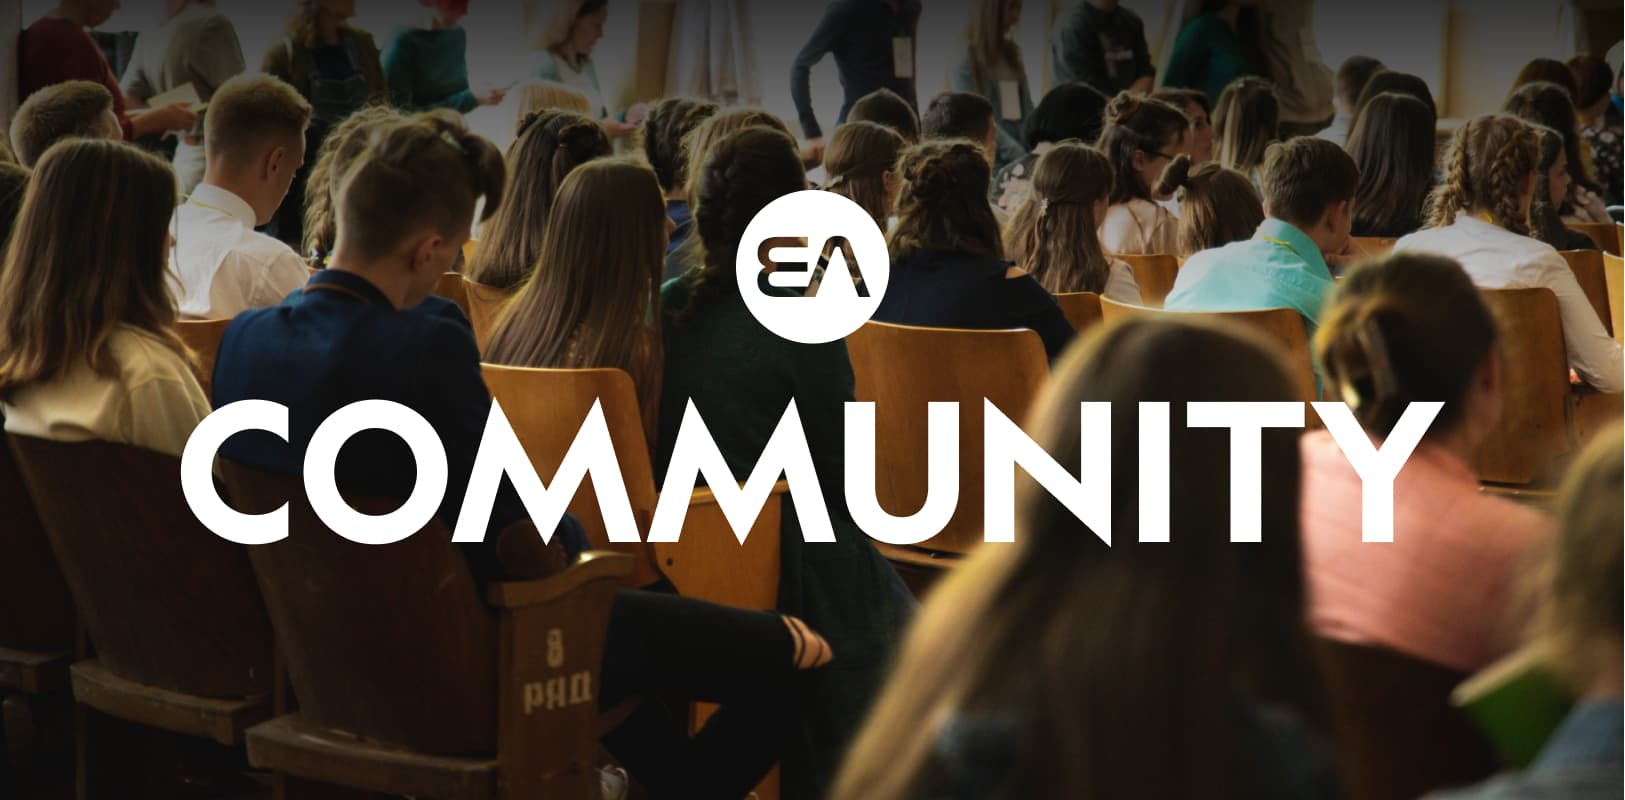 Community - The Earth Archive